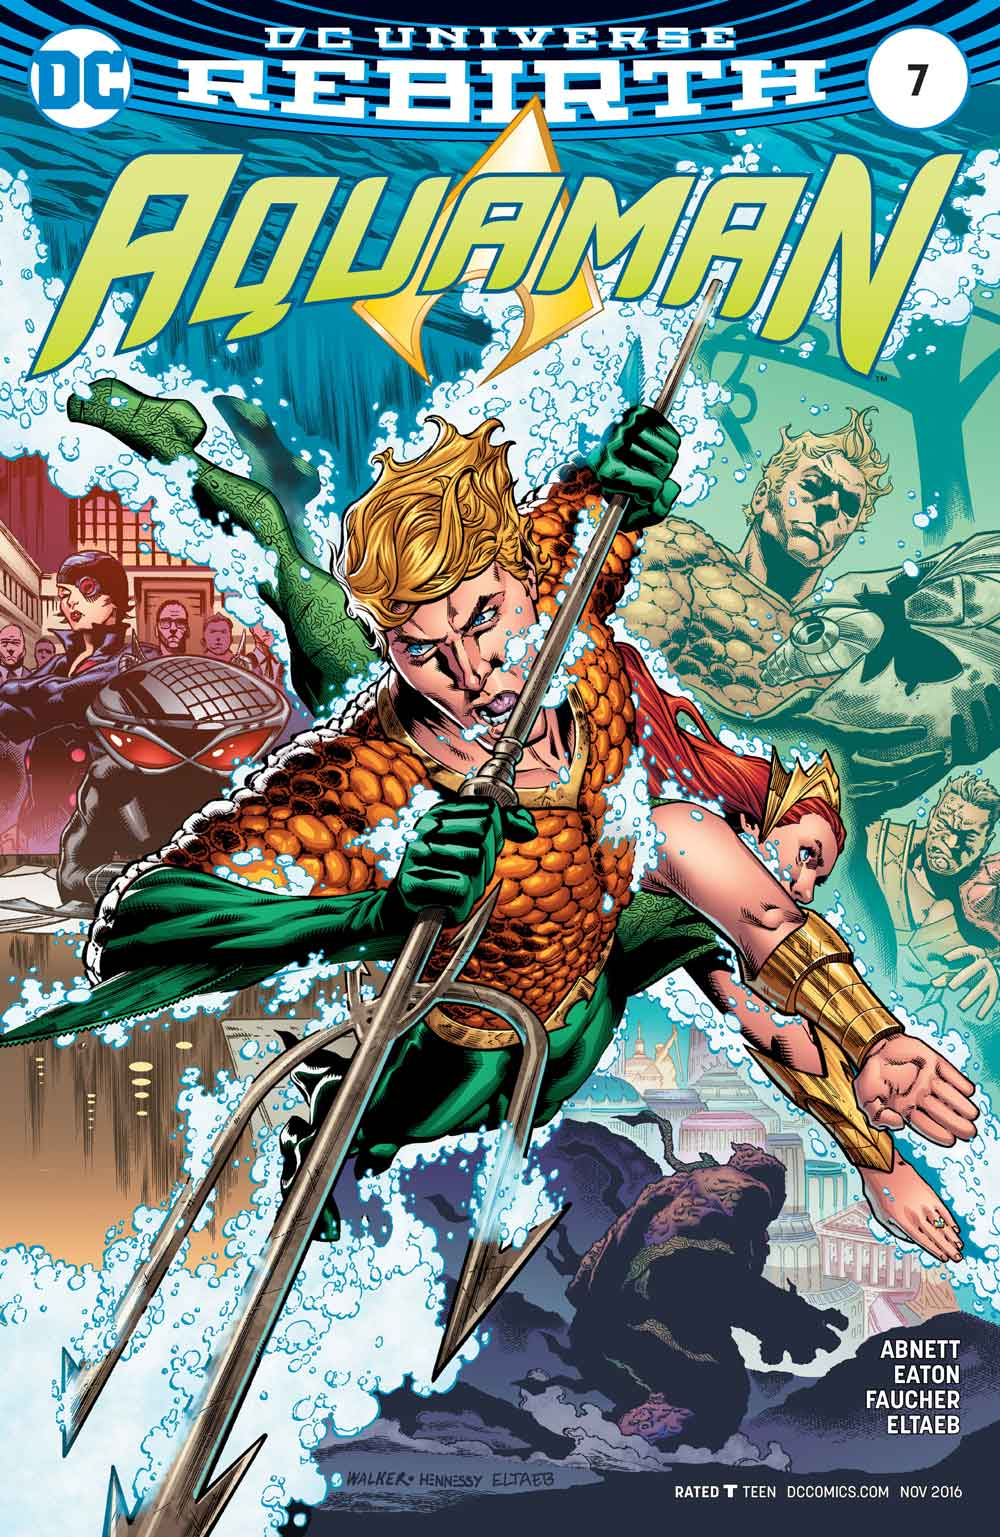 AQUAMAN #7 cover by Brad Walker, Andrew Hennessey, Gabe Eltaeb!